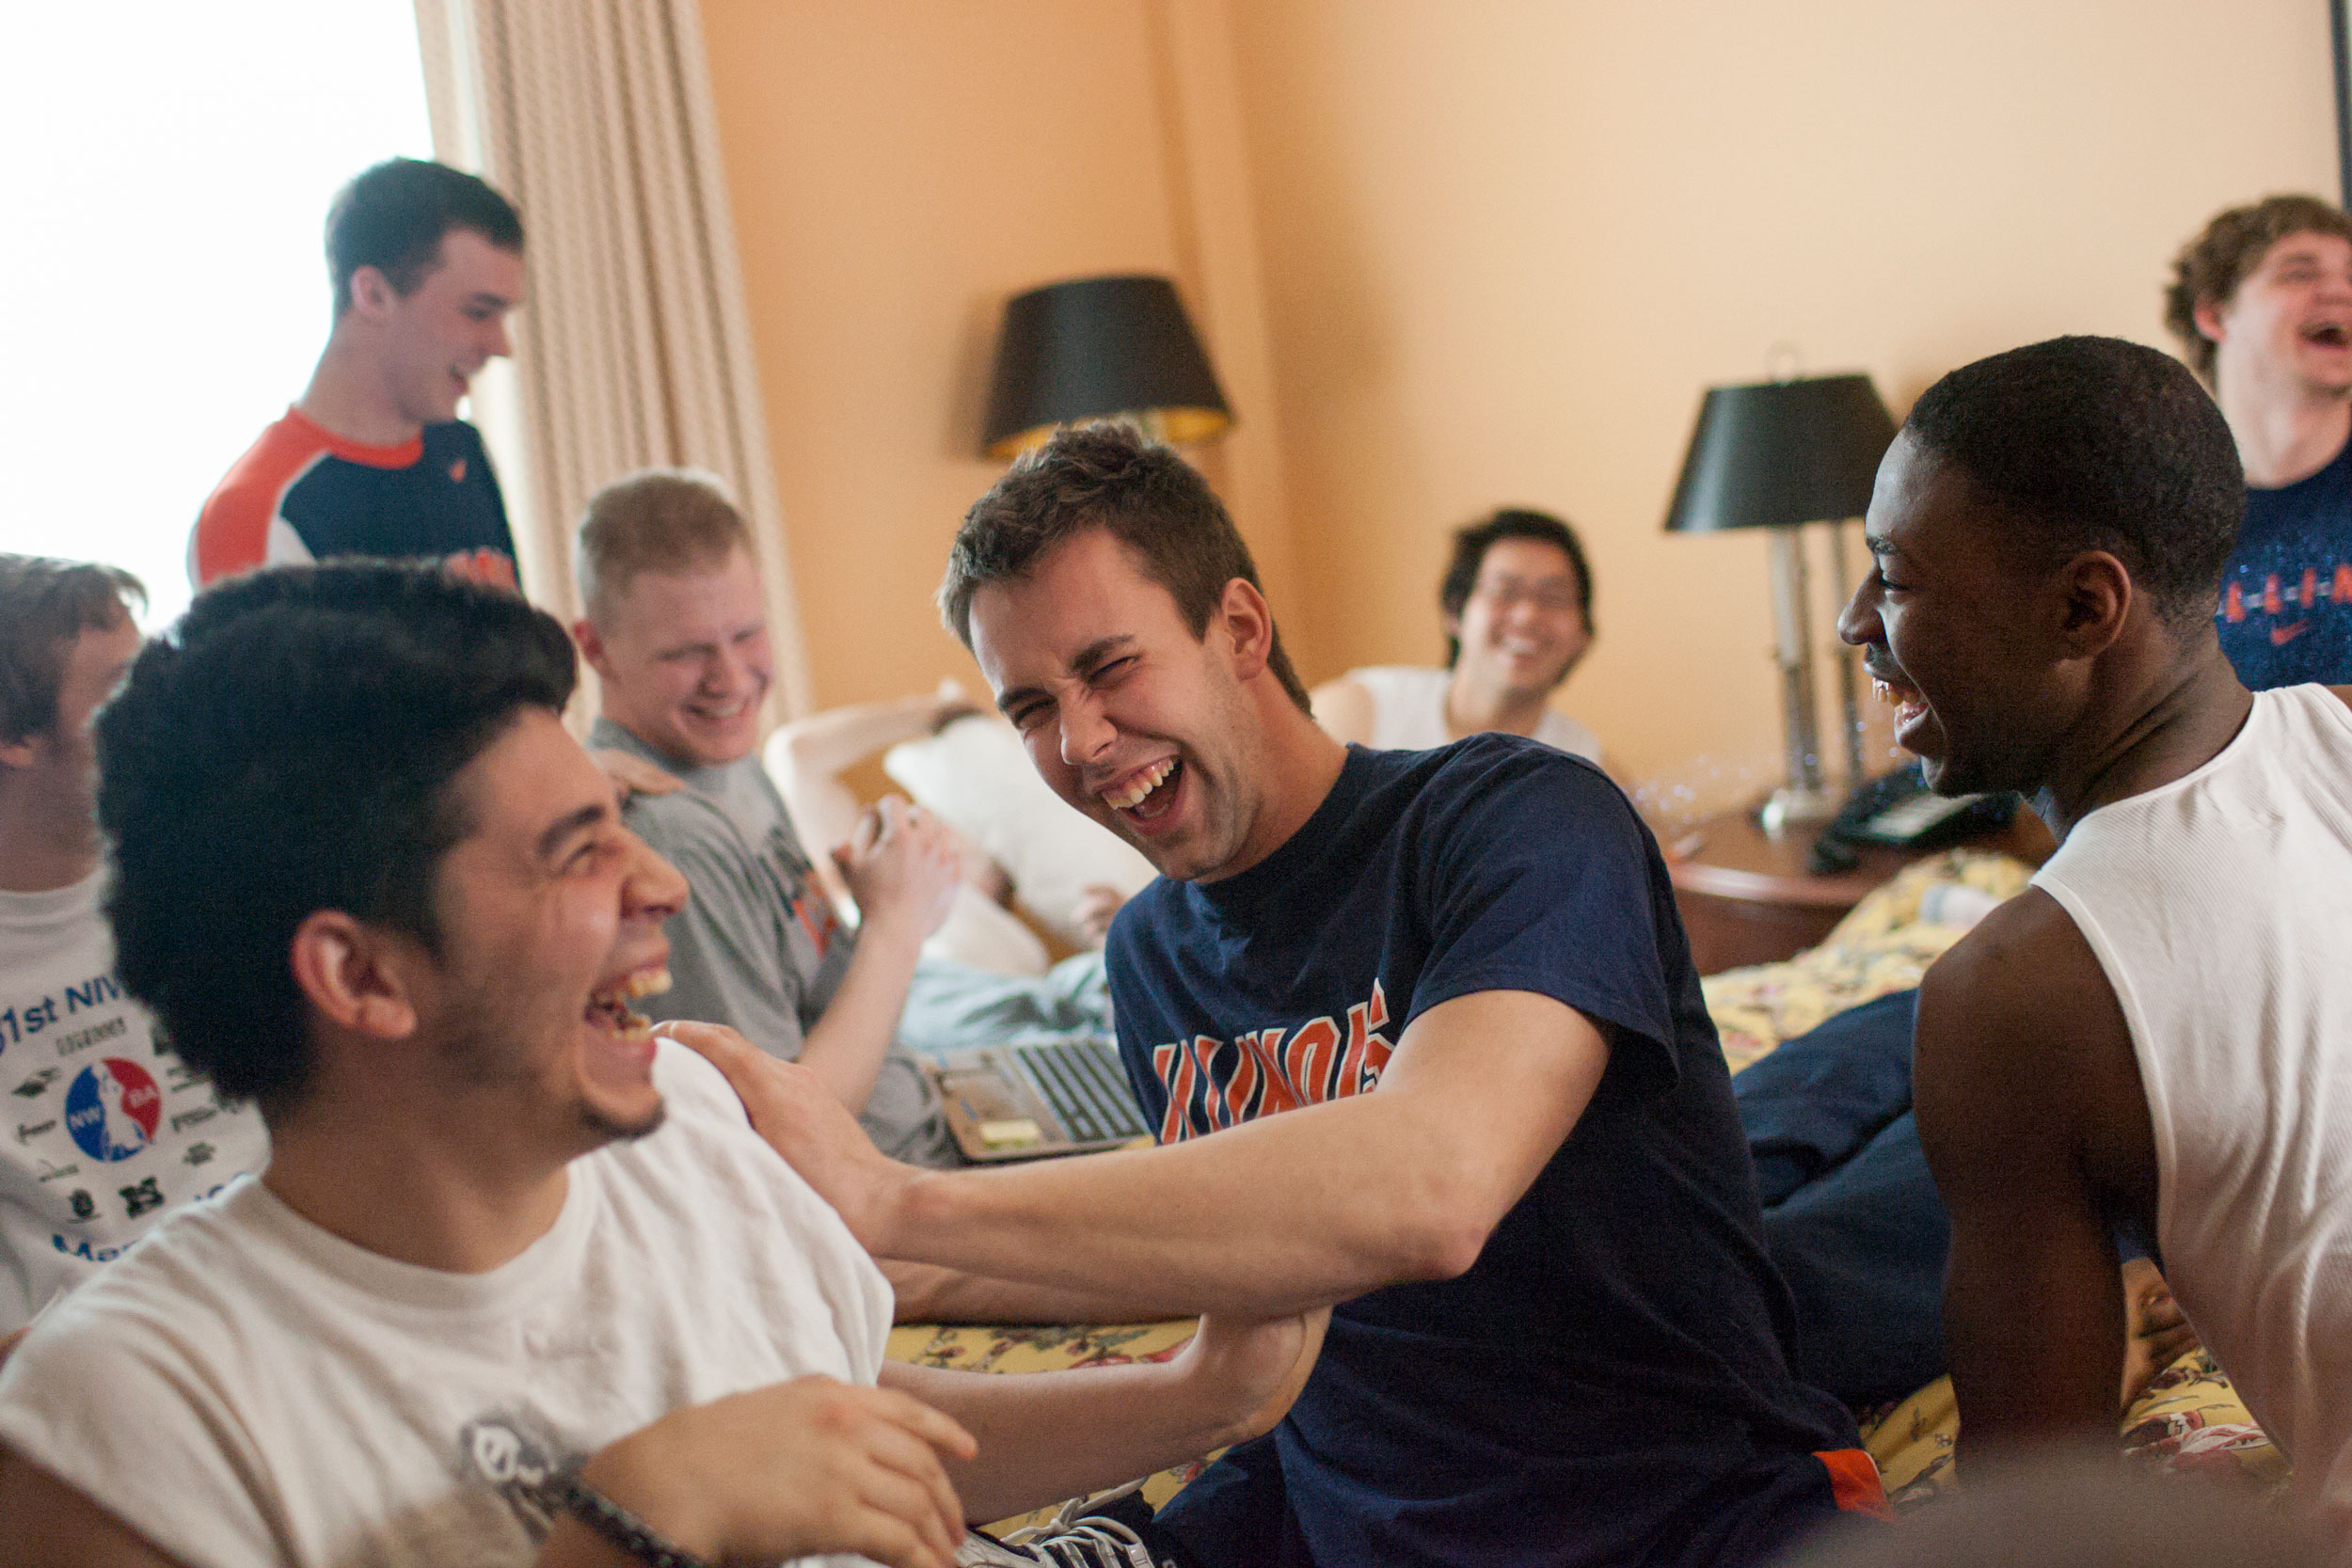 """From left, in front, Jaime Baltazar, Aaron Pike, and Brian Bell laugh together with teammates during a team meeting at their hotel. """"Off the court, they really interact with each other really well,"""" head coach Mike Frogley said. """"And that's good — in the long run, that'll help them on the court."""""""